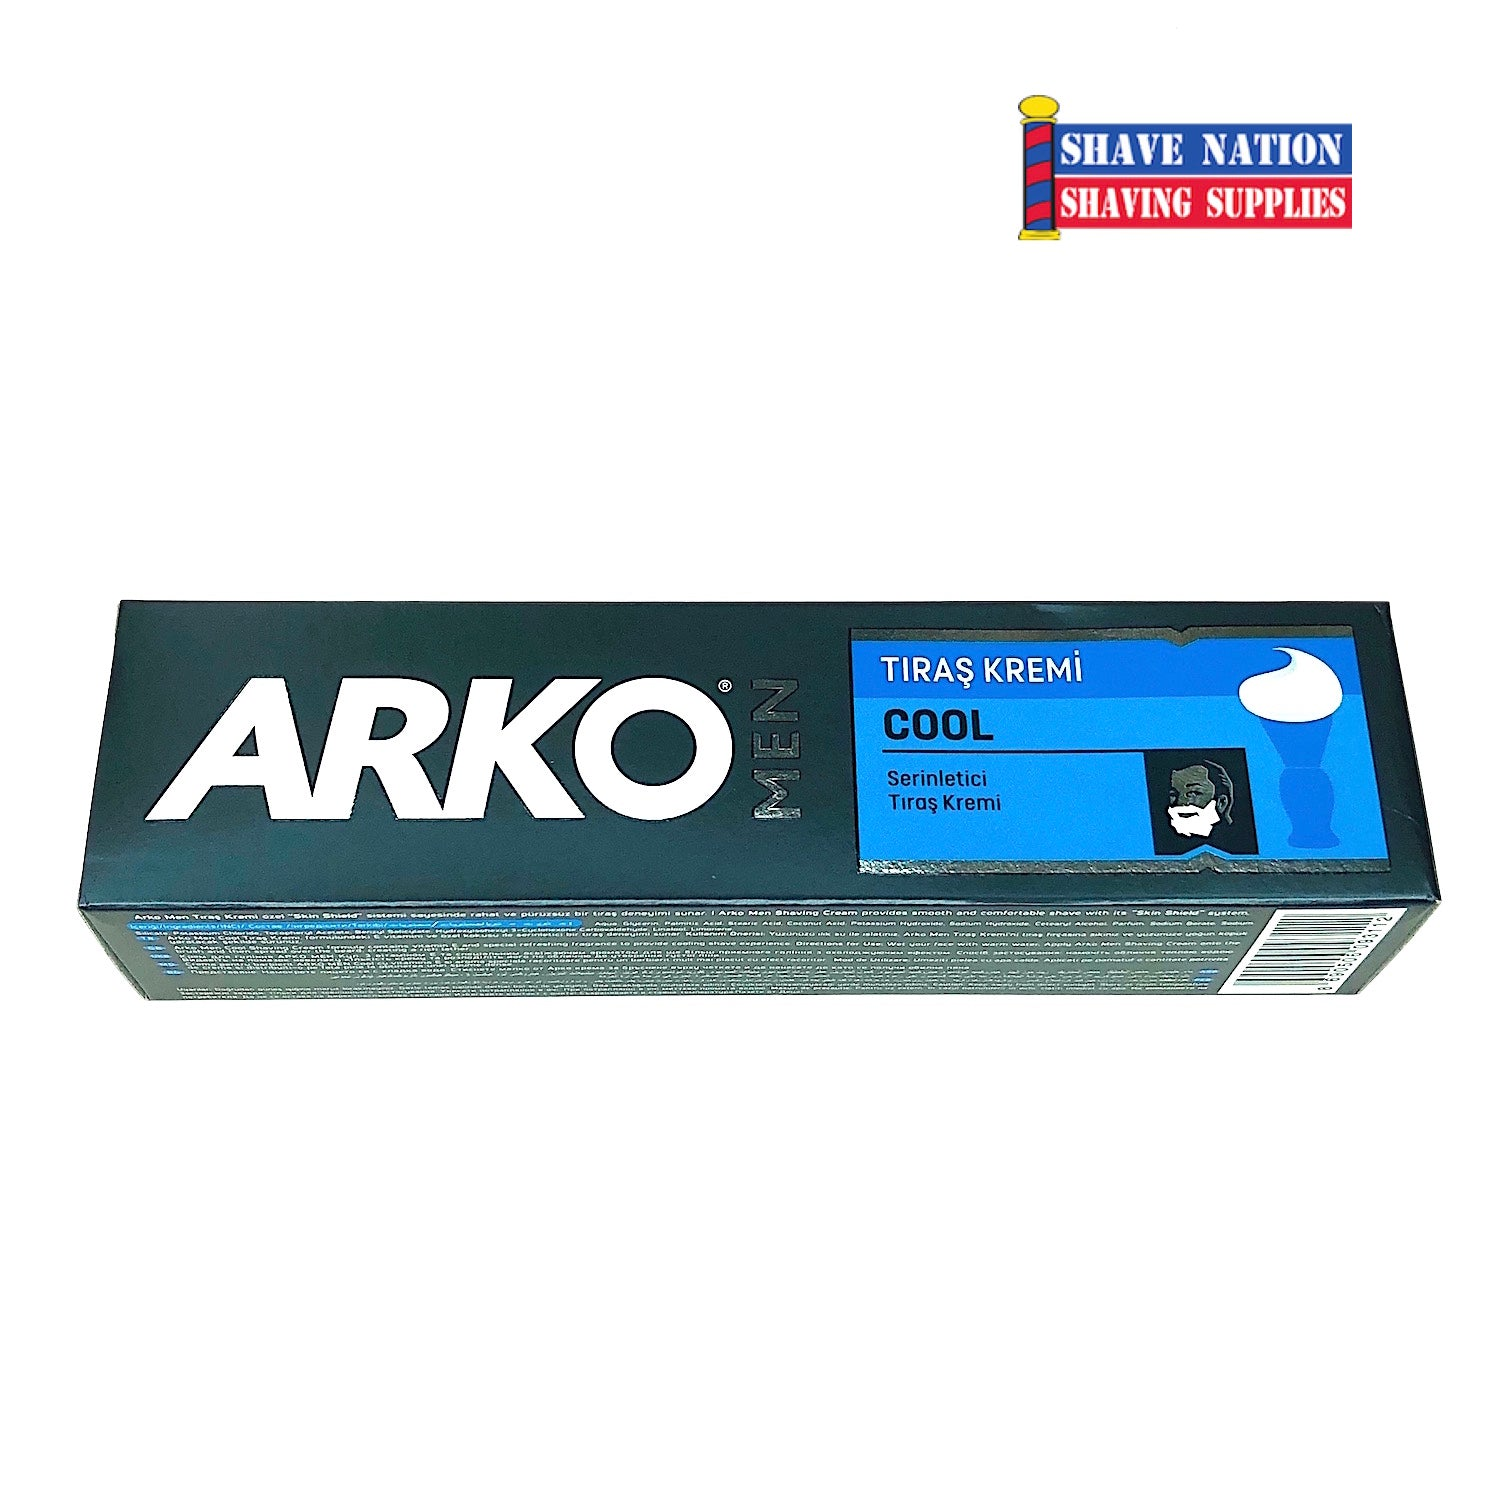 Arko Cool Shaving Cream